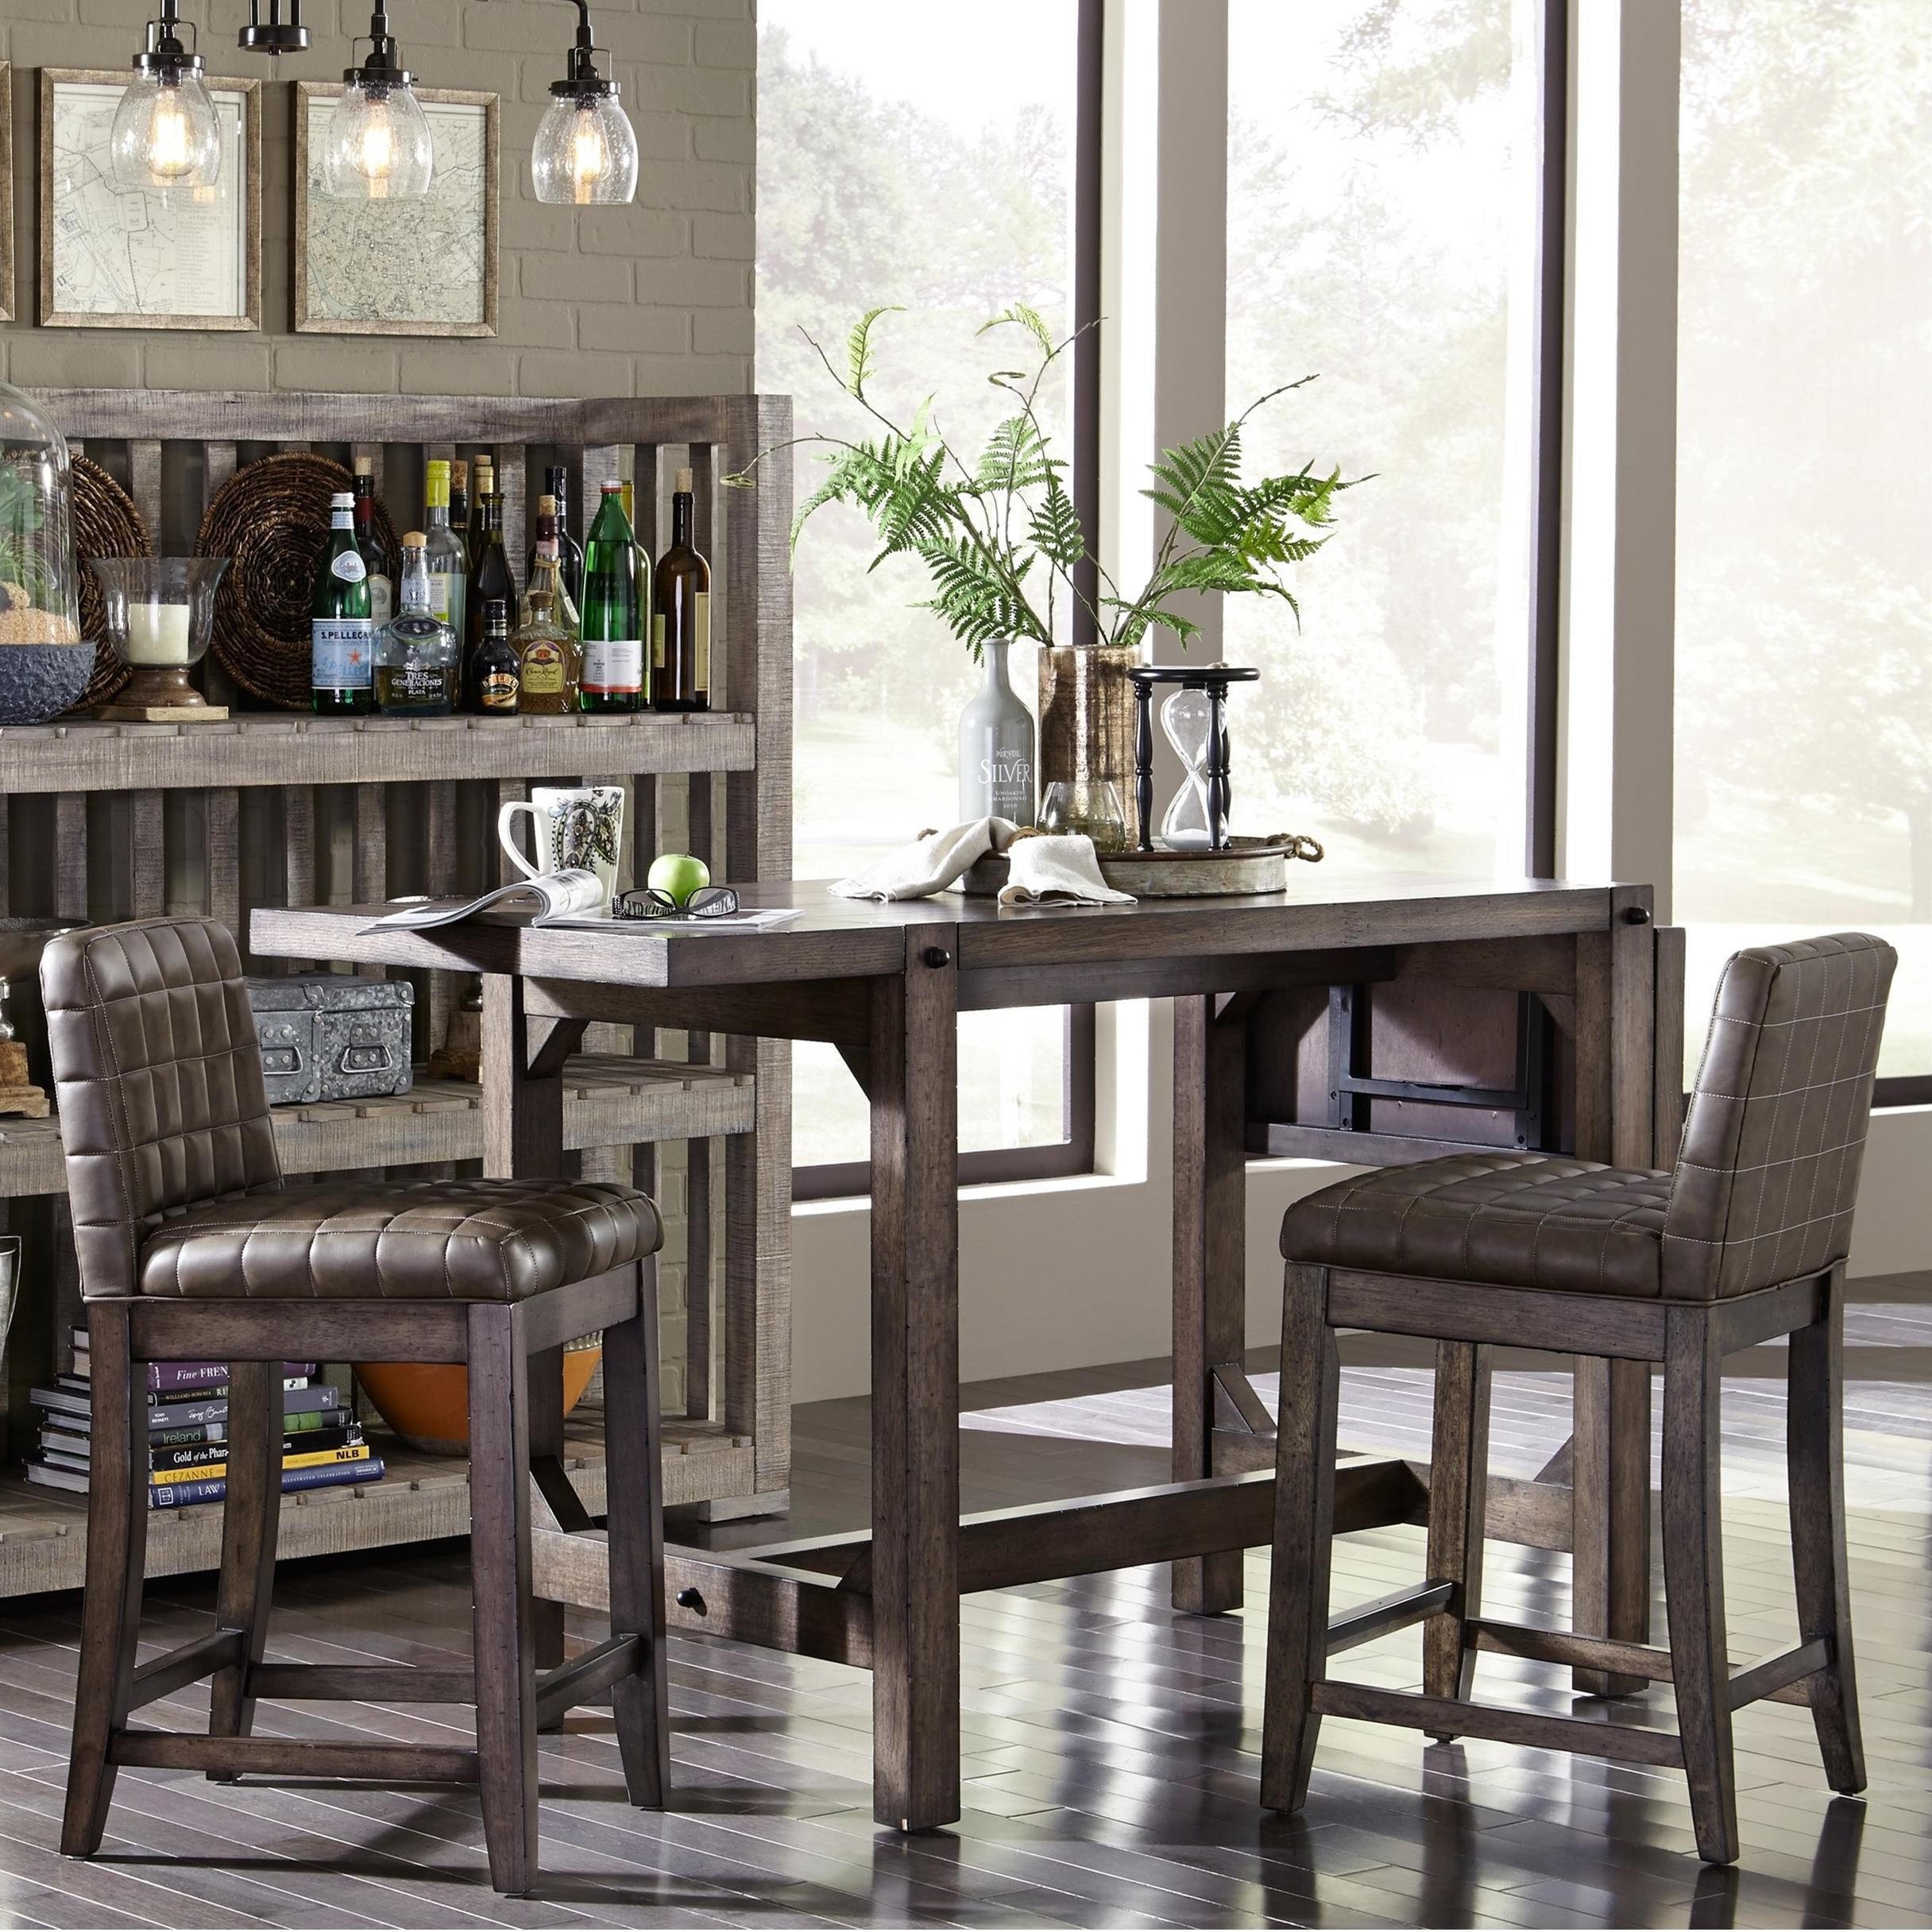 Broyhill Furniture Bedford Avenue 3 Piece Counter Height Table and Stool Set - Item Number: 8615-504+2x529